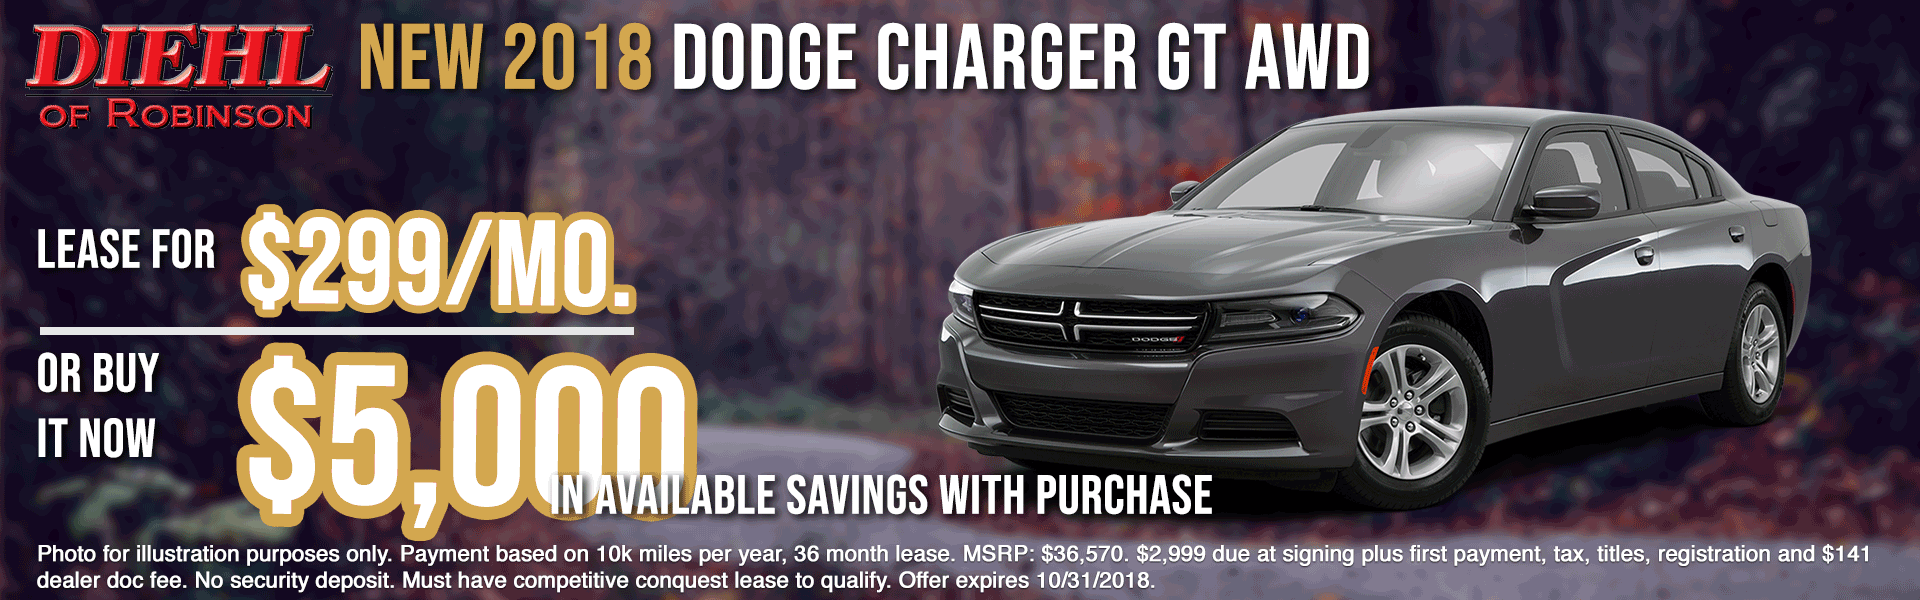 18D0105-2018-DODGE-CHARGER-GT-AWD-OCT Robinson new vehicle specials diehl of Robinsonn new vehicle specials jeep specials ram specials dodge specials Chrysler specials new specials cdjr specials diehl auto diehl specials Robinson specials Robinson township